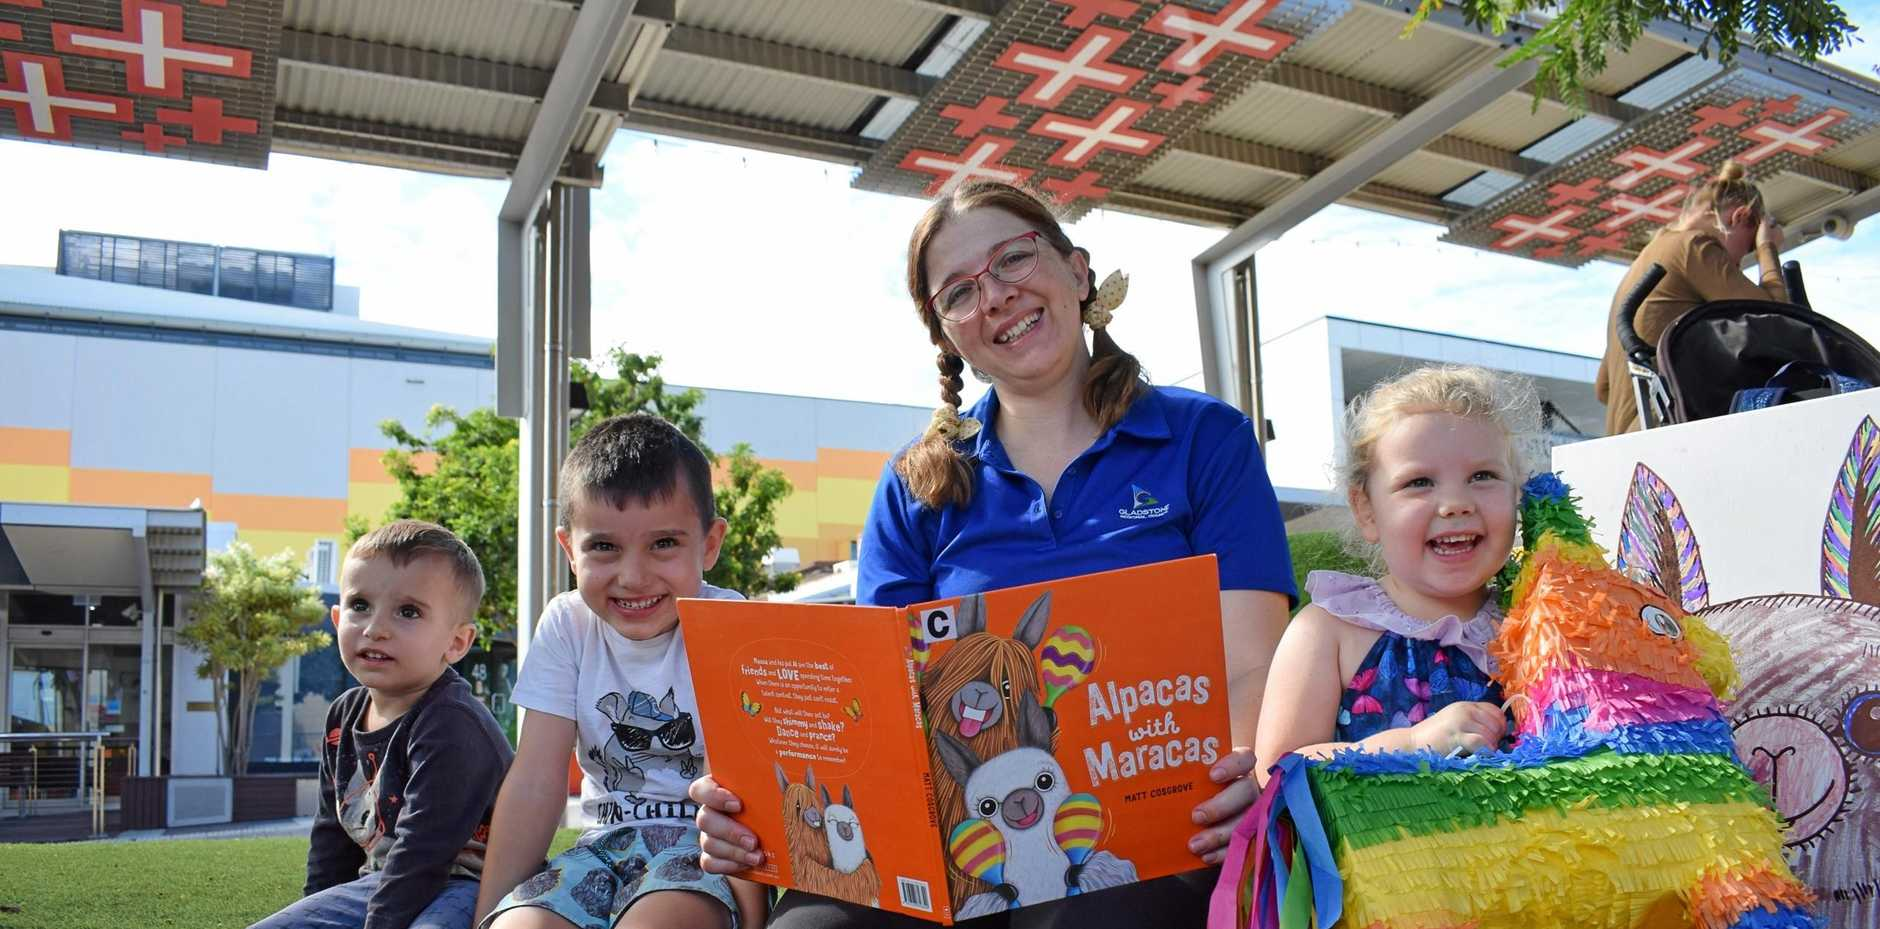 GET BOOKED: Darcy Galea, Louis Galea, Sarah Johnstone and Layla Dau reading Alpacas with Maracas at National Storytelling Day at Gladstone Library Square.